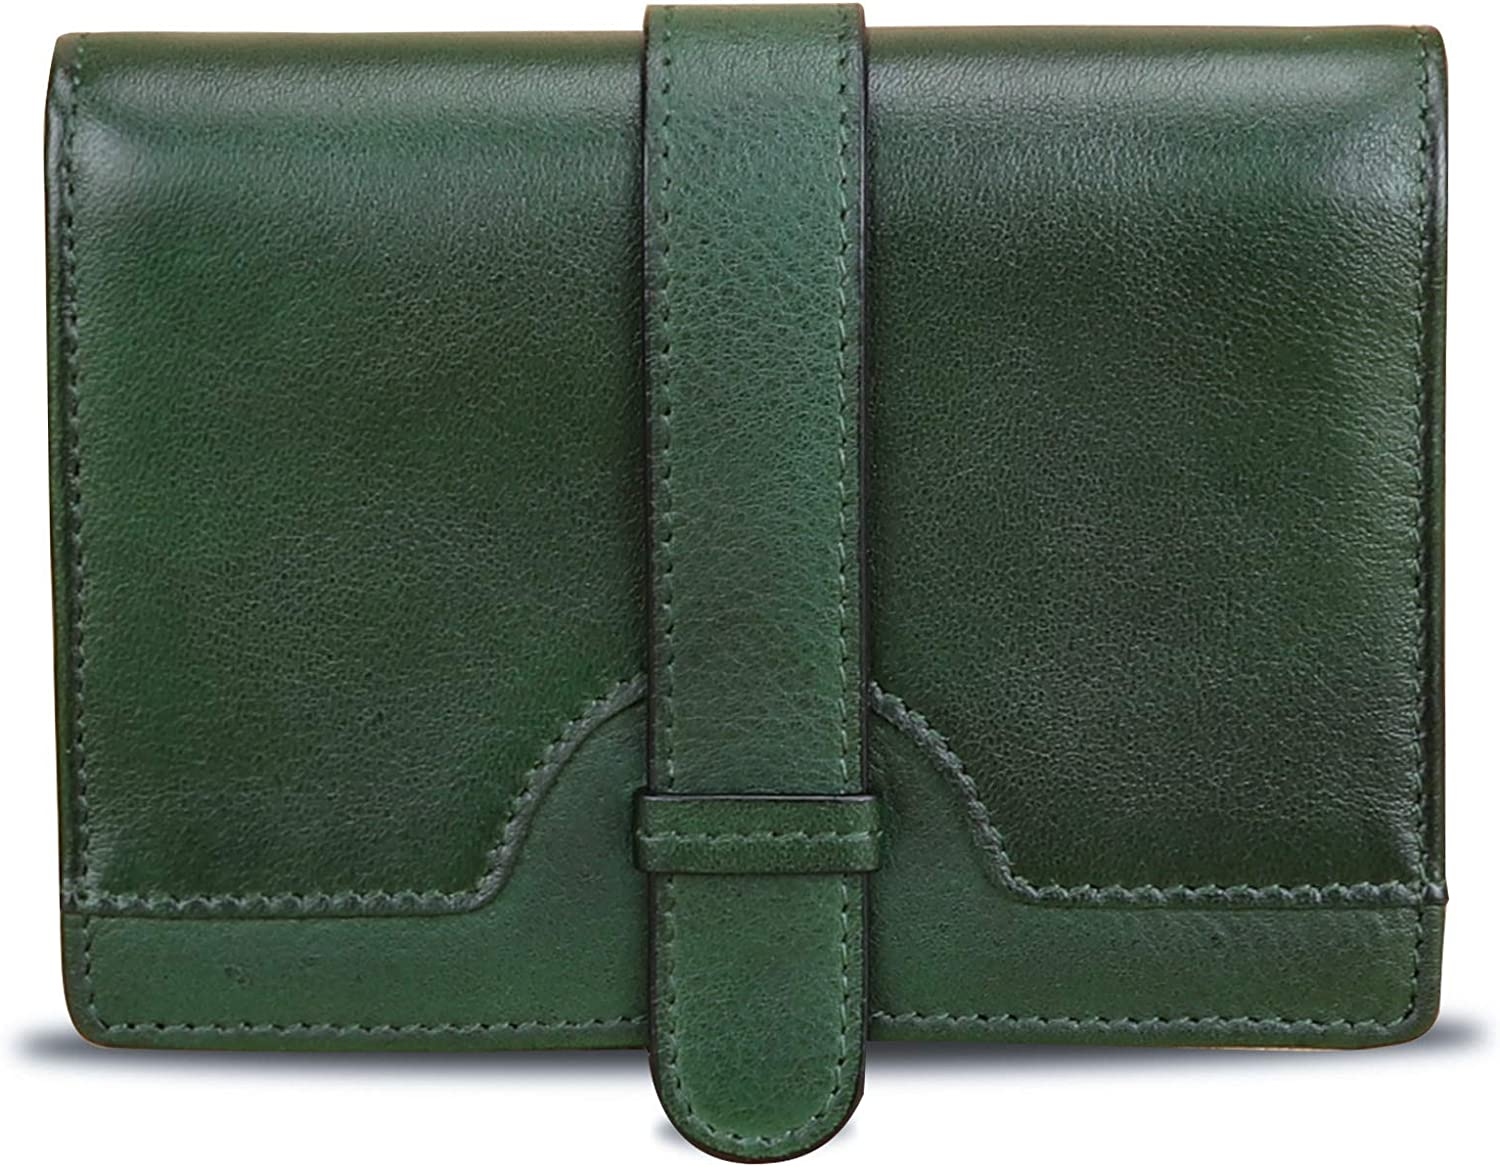 Genuine Leather Small Ranking TOP19 Purse Very popular Wallet for RFID-Blocking Women Handm